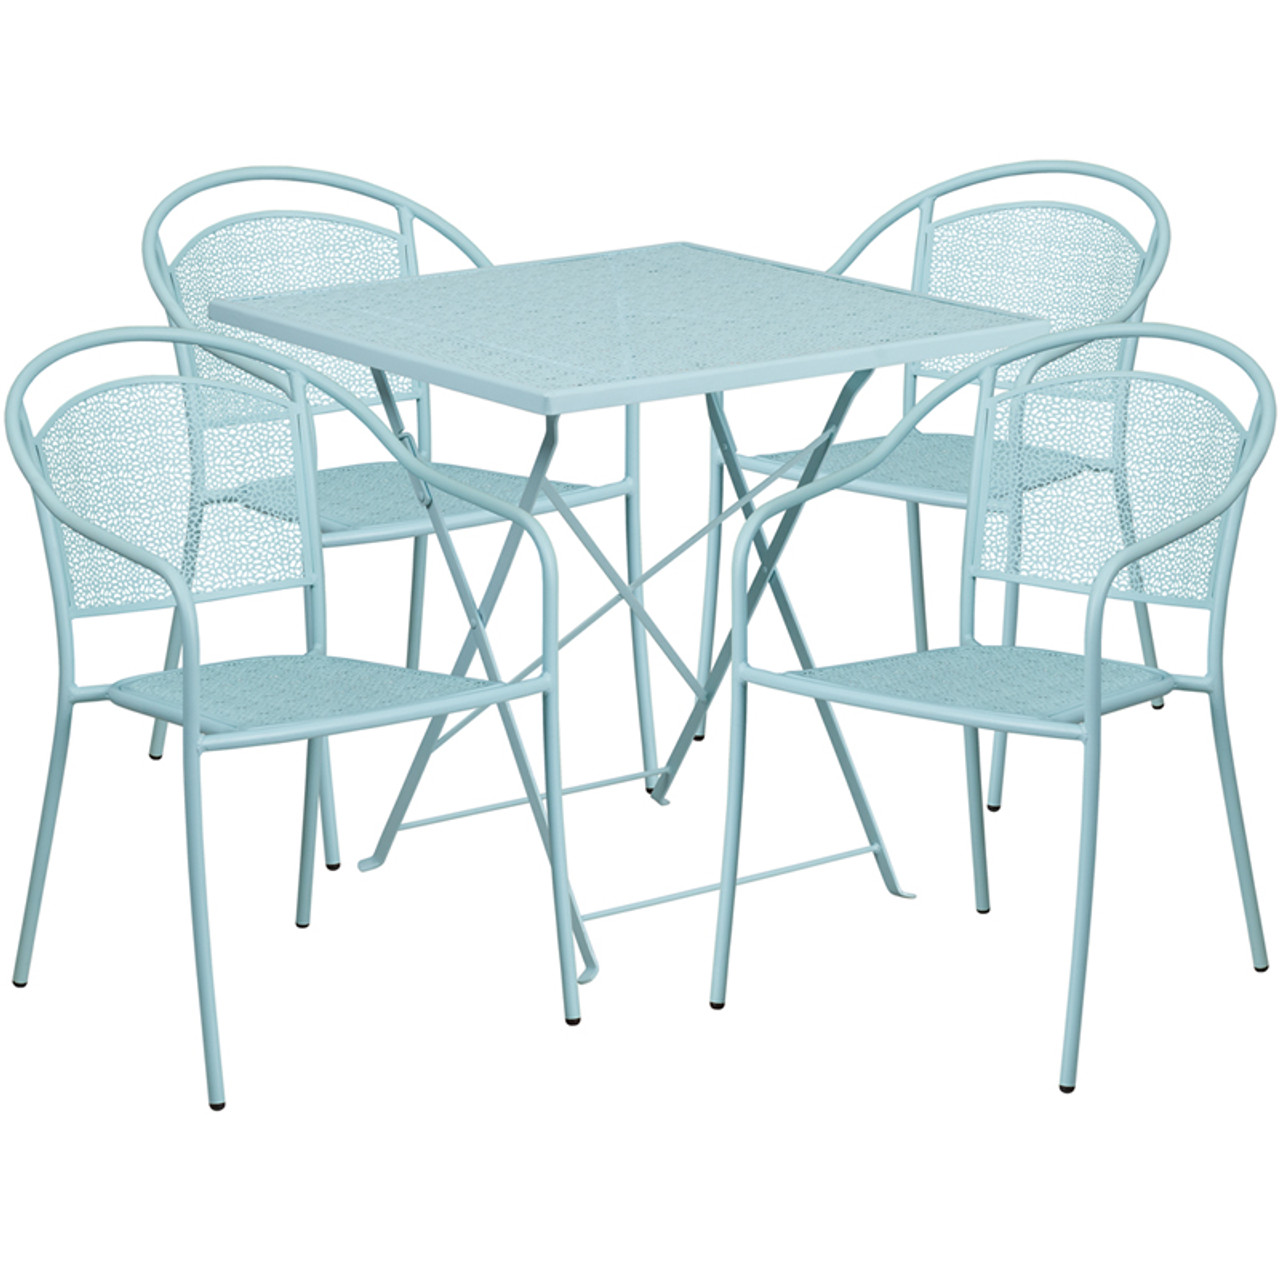 28 Square Sky Blue Indoor Outdoor Steel Folding Patio Table Set